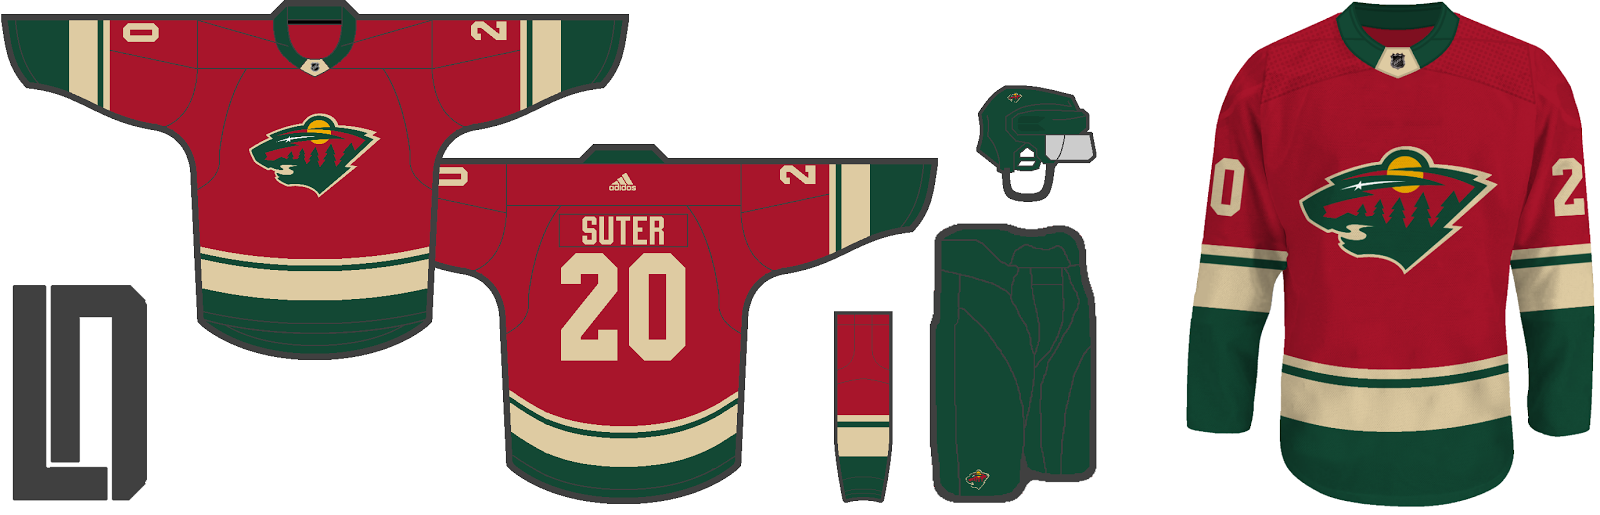 Minnesota+Wild+Concept.png